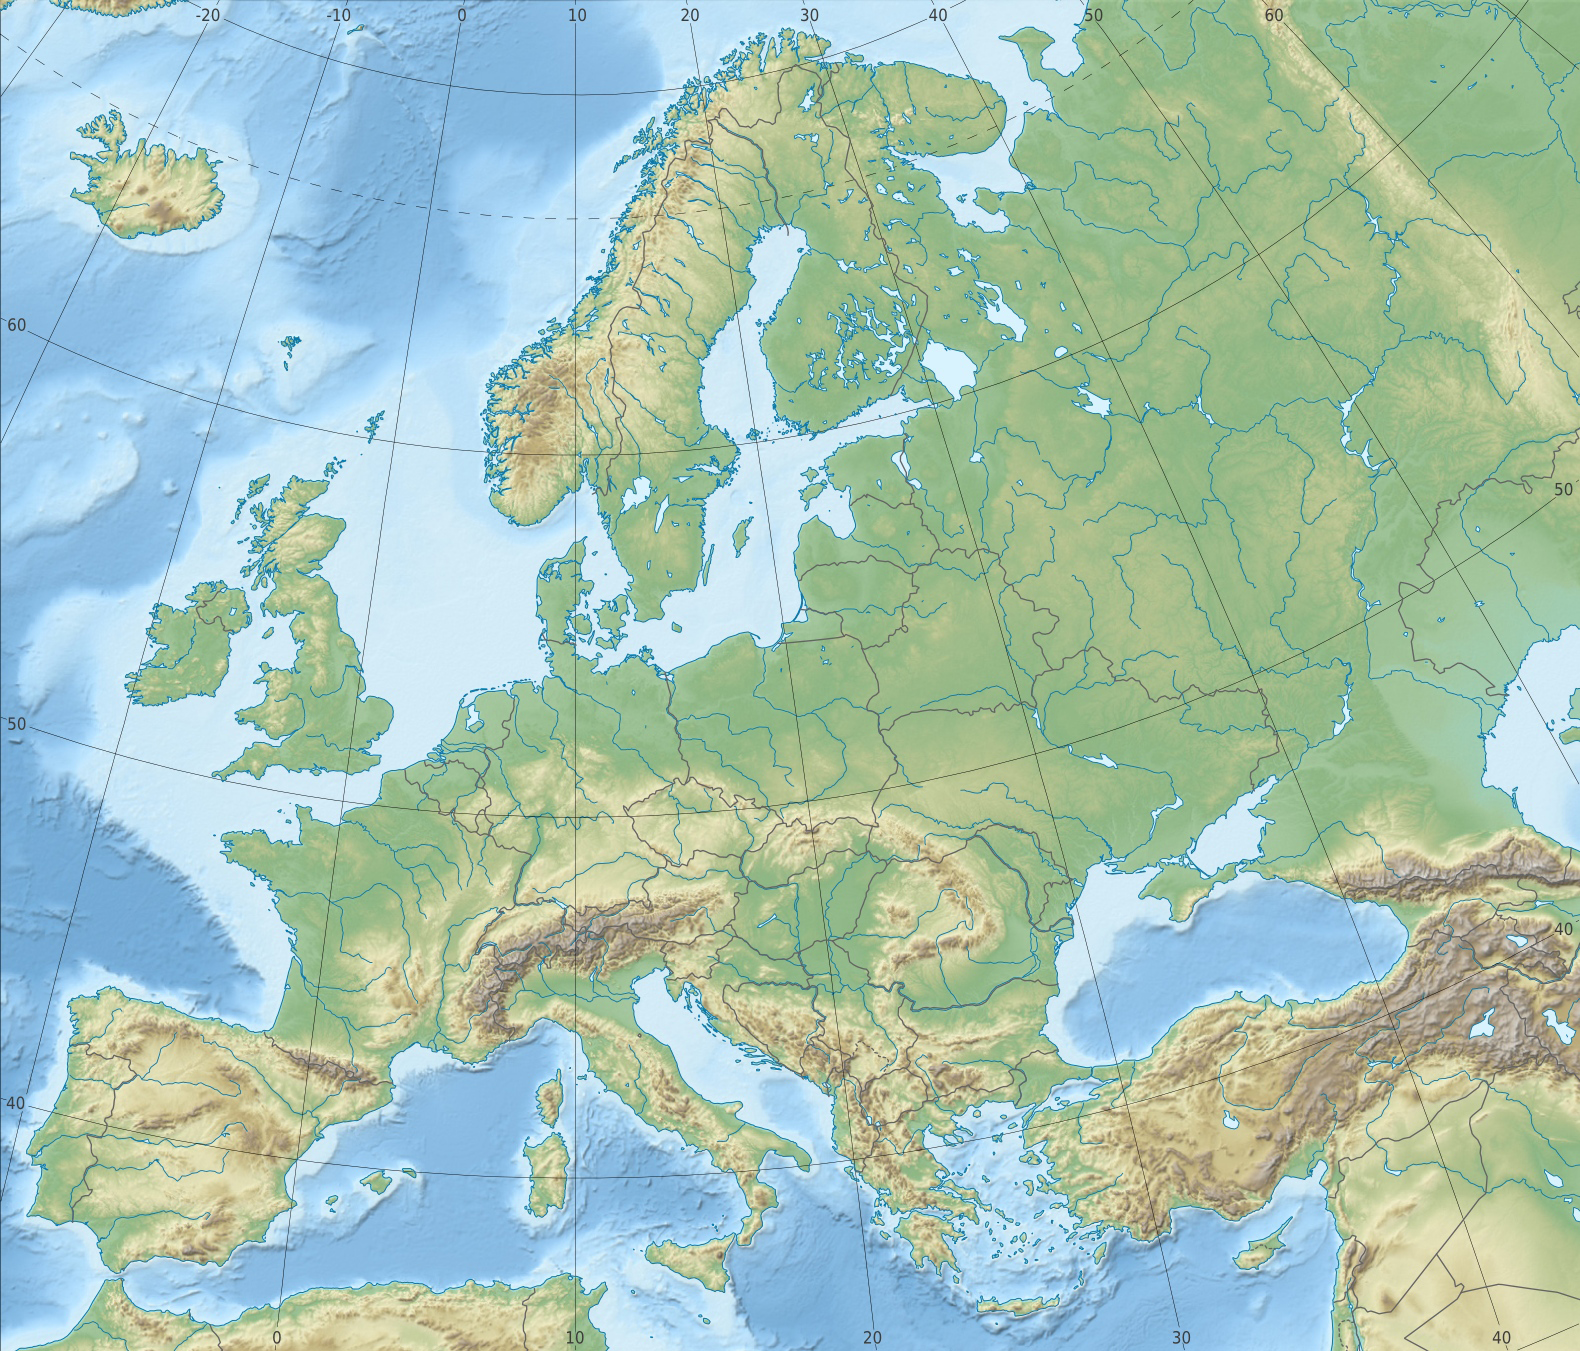 RELIEF MAP OF EUROPE MOUNTAIN RANGES Little Mir s